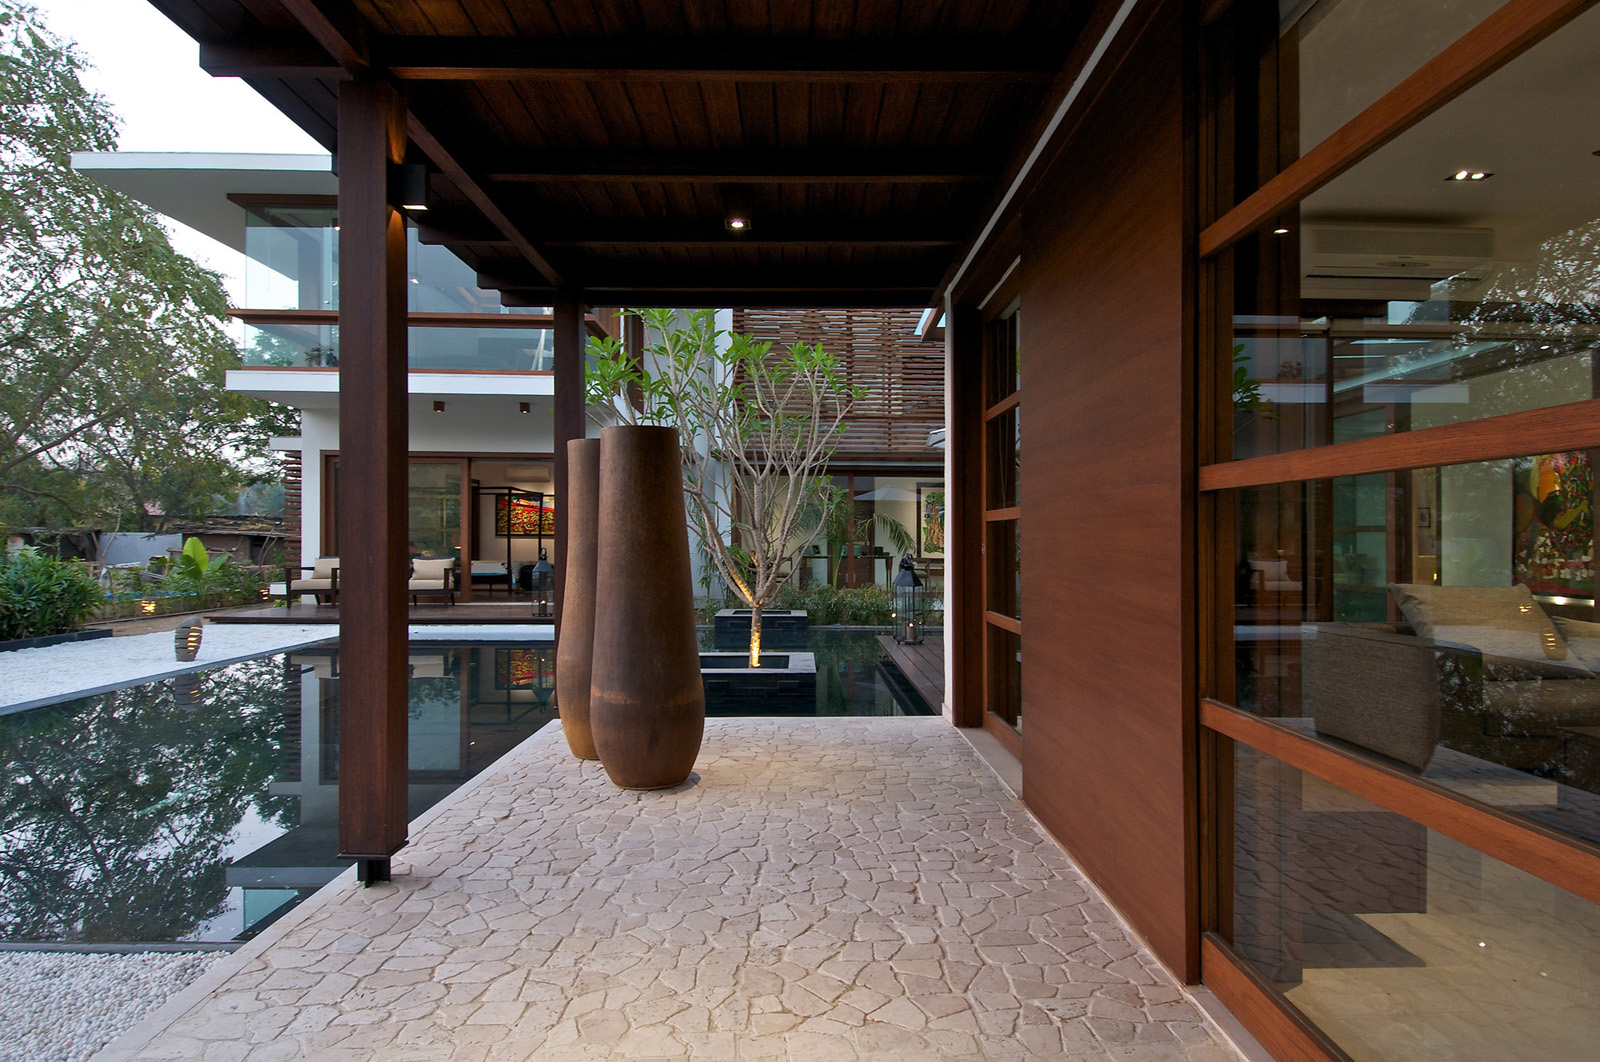 timeless contemporary house in india with courtyard zen garden, Best garten ideen